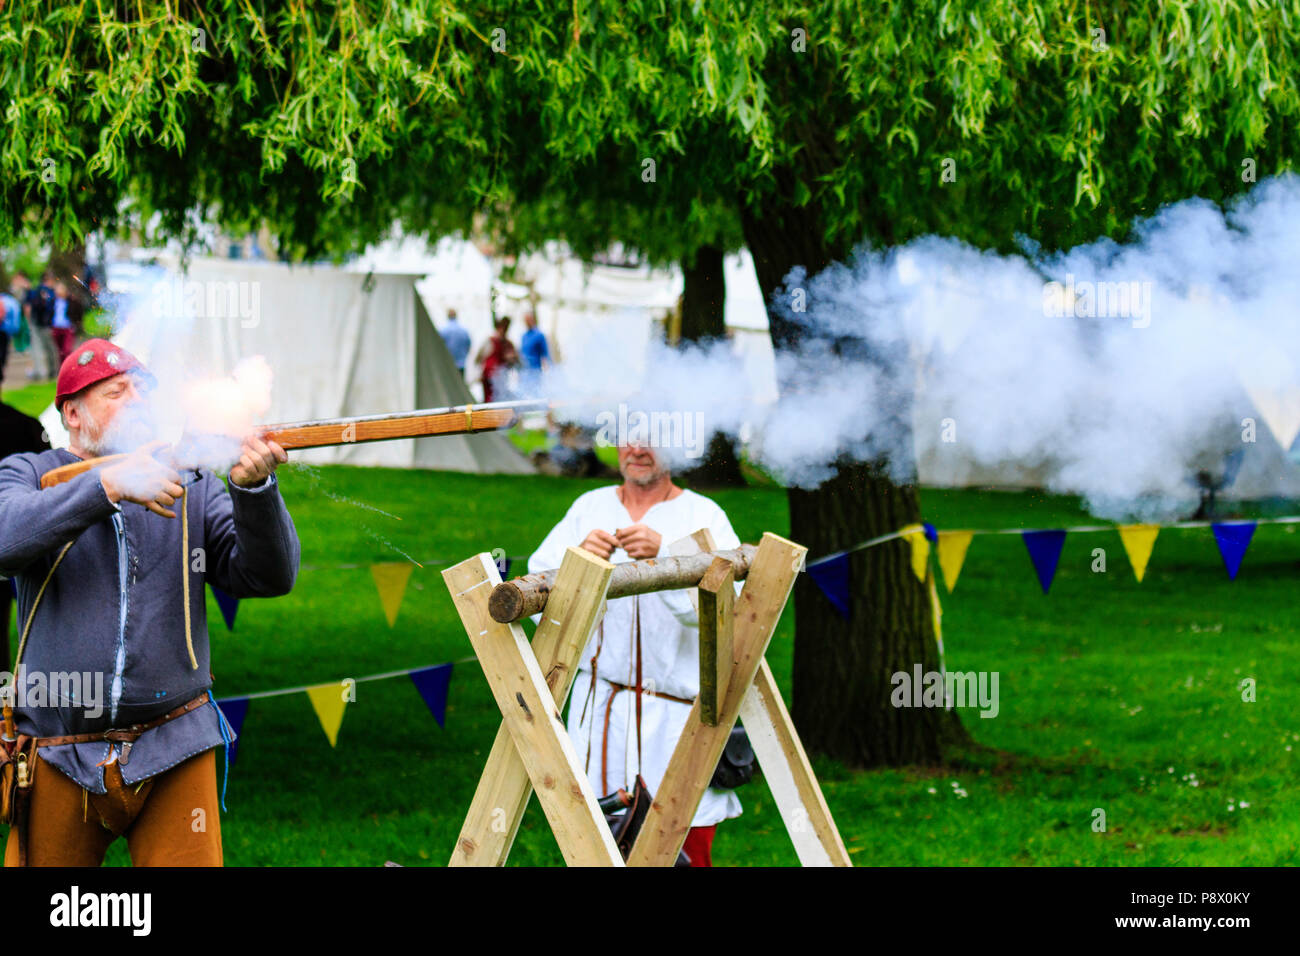 Man in medieval costume, firing harquebus, arquebus, early reconstructed gun, circa 16th century at living history re-enactment event - Stock Image